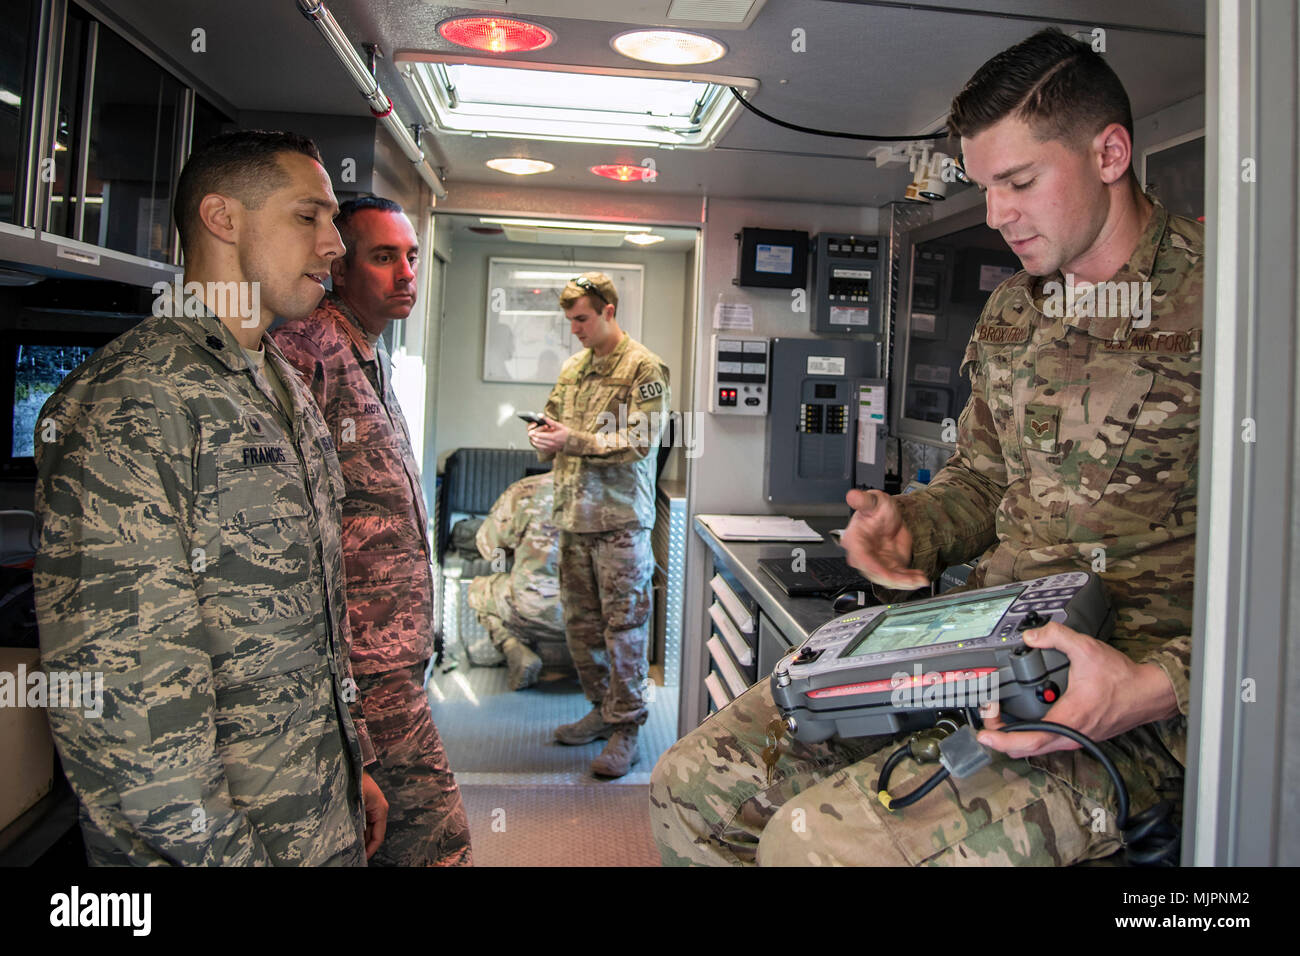 Senior Airman Trenton Broxterman, 23d Civil Engineer Squadron (CES) Explosive Ordinance Disposal (EOD) apprentice, explains a display screen to Lt. Col Michael Francis, 23d CES commander, during a response training exercise, Dec 21, 2017, at Moody Air Force Base, Ga. The EOD Airmen were evaluated on their ability to respond to a distress call, locate, identify and neutralize an improvised explosive device. (U.S. Air Force photo by Airman Eugene Oliver) - Stock Image